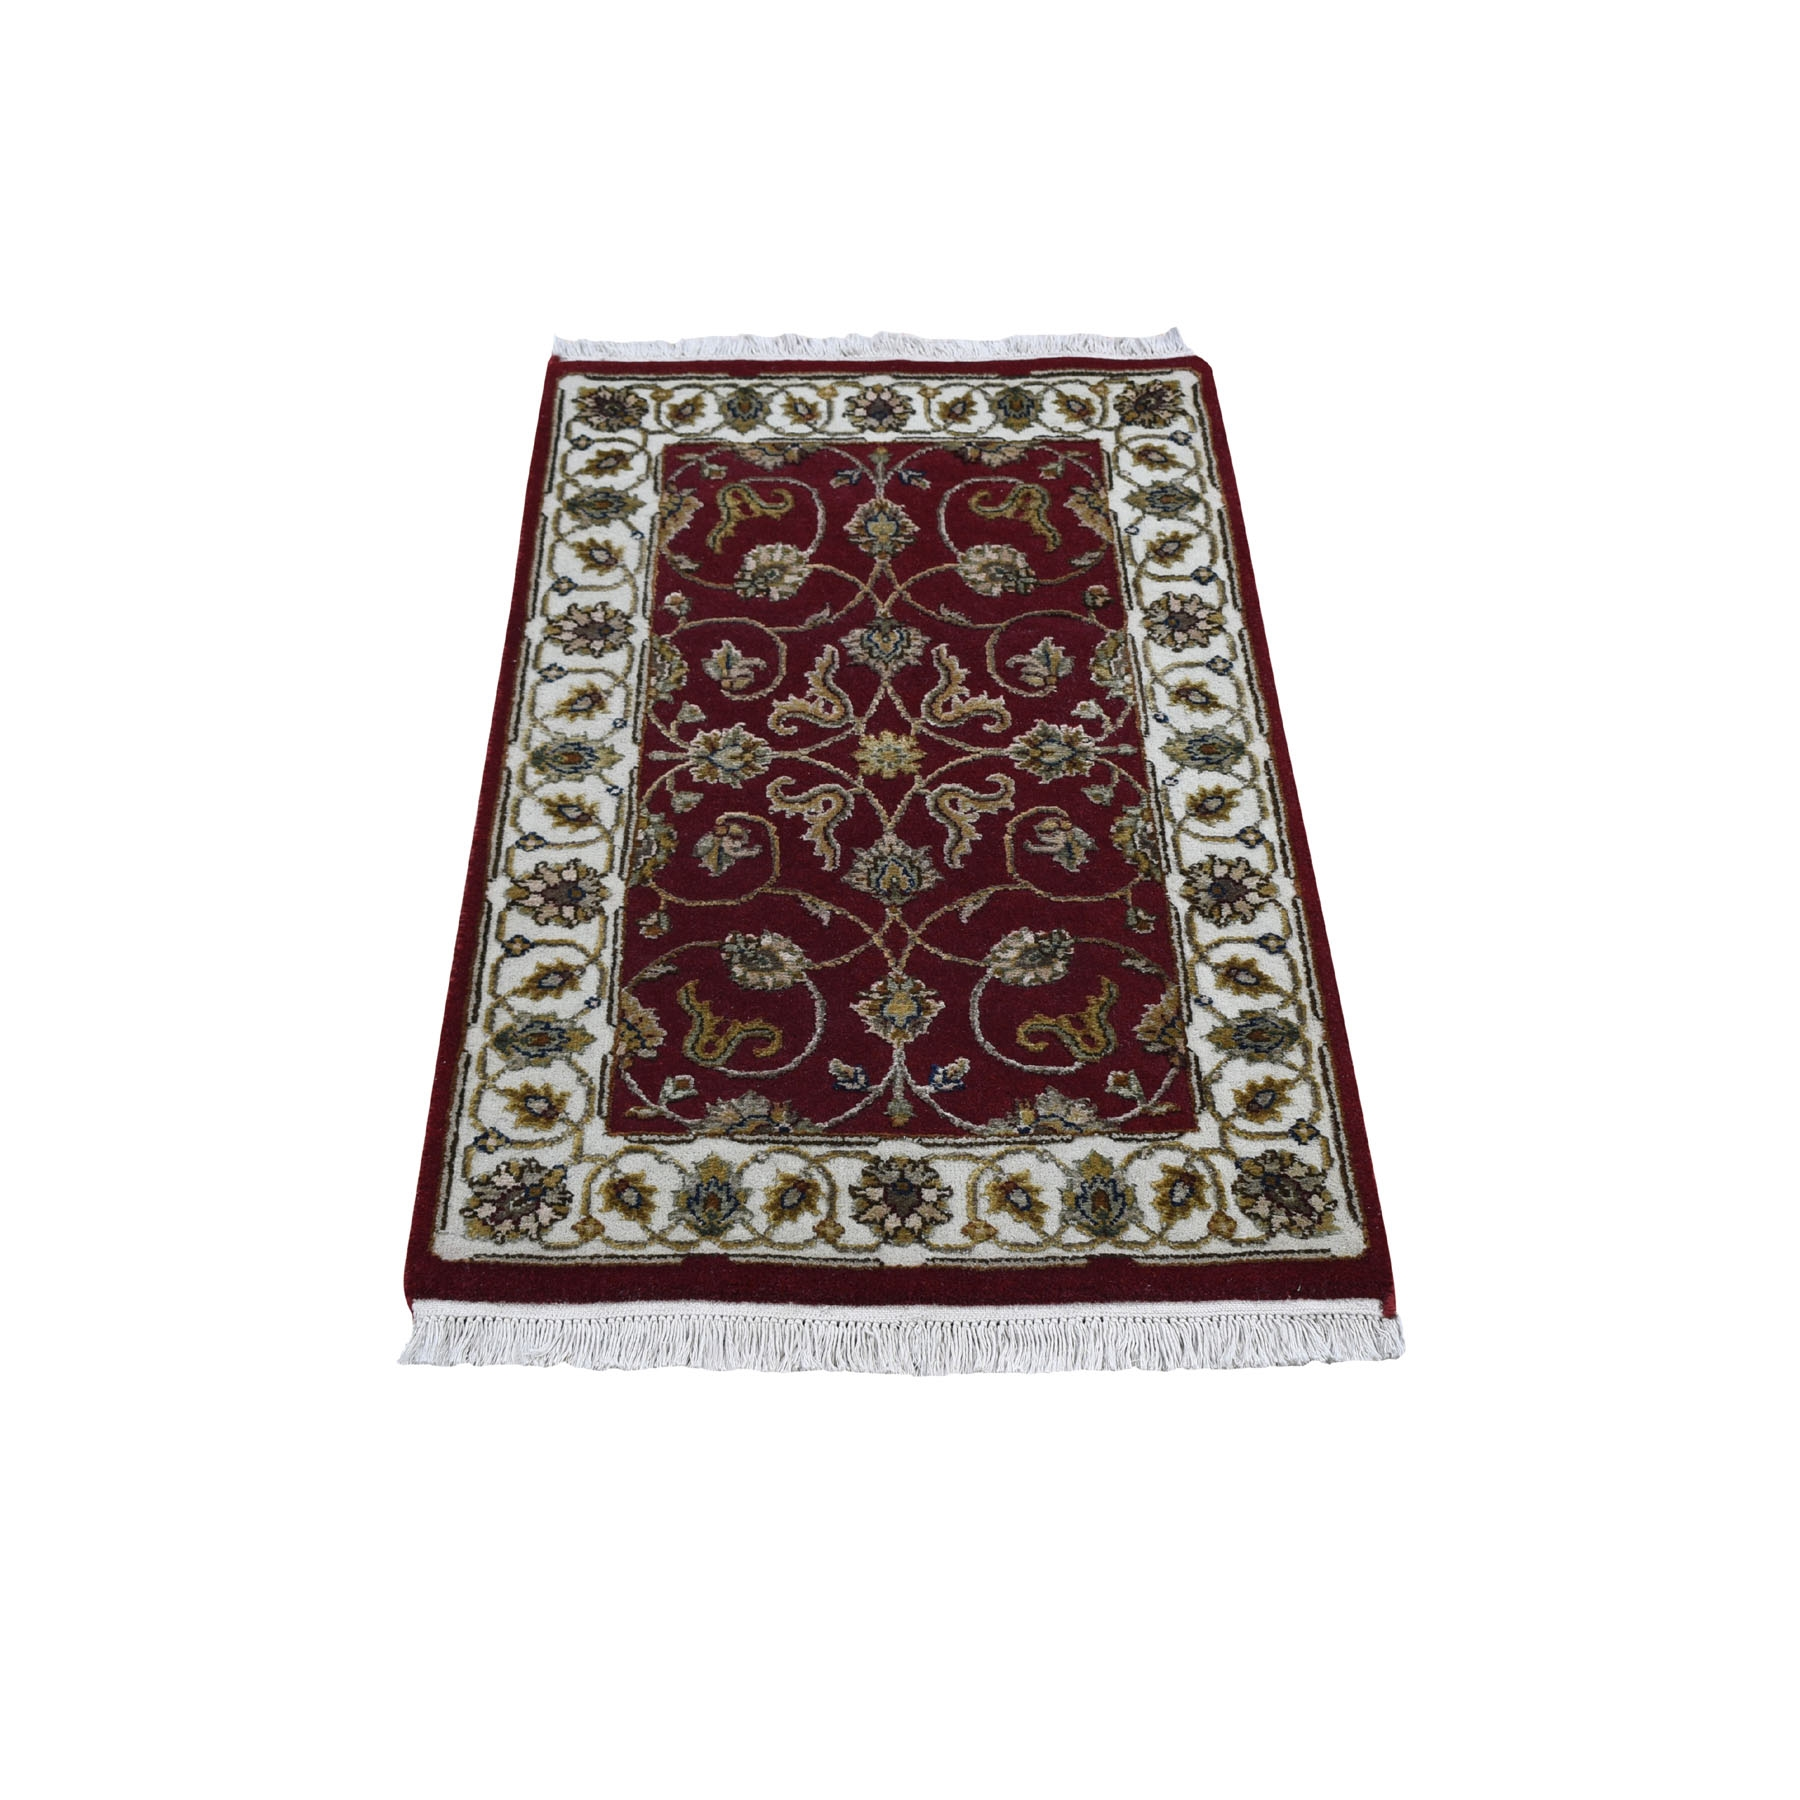 "2'x3'3"" Hand Woven Half Wool And Half Silk Rajasthan Hand Woven Oriental Rug"